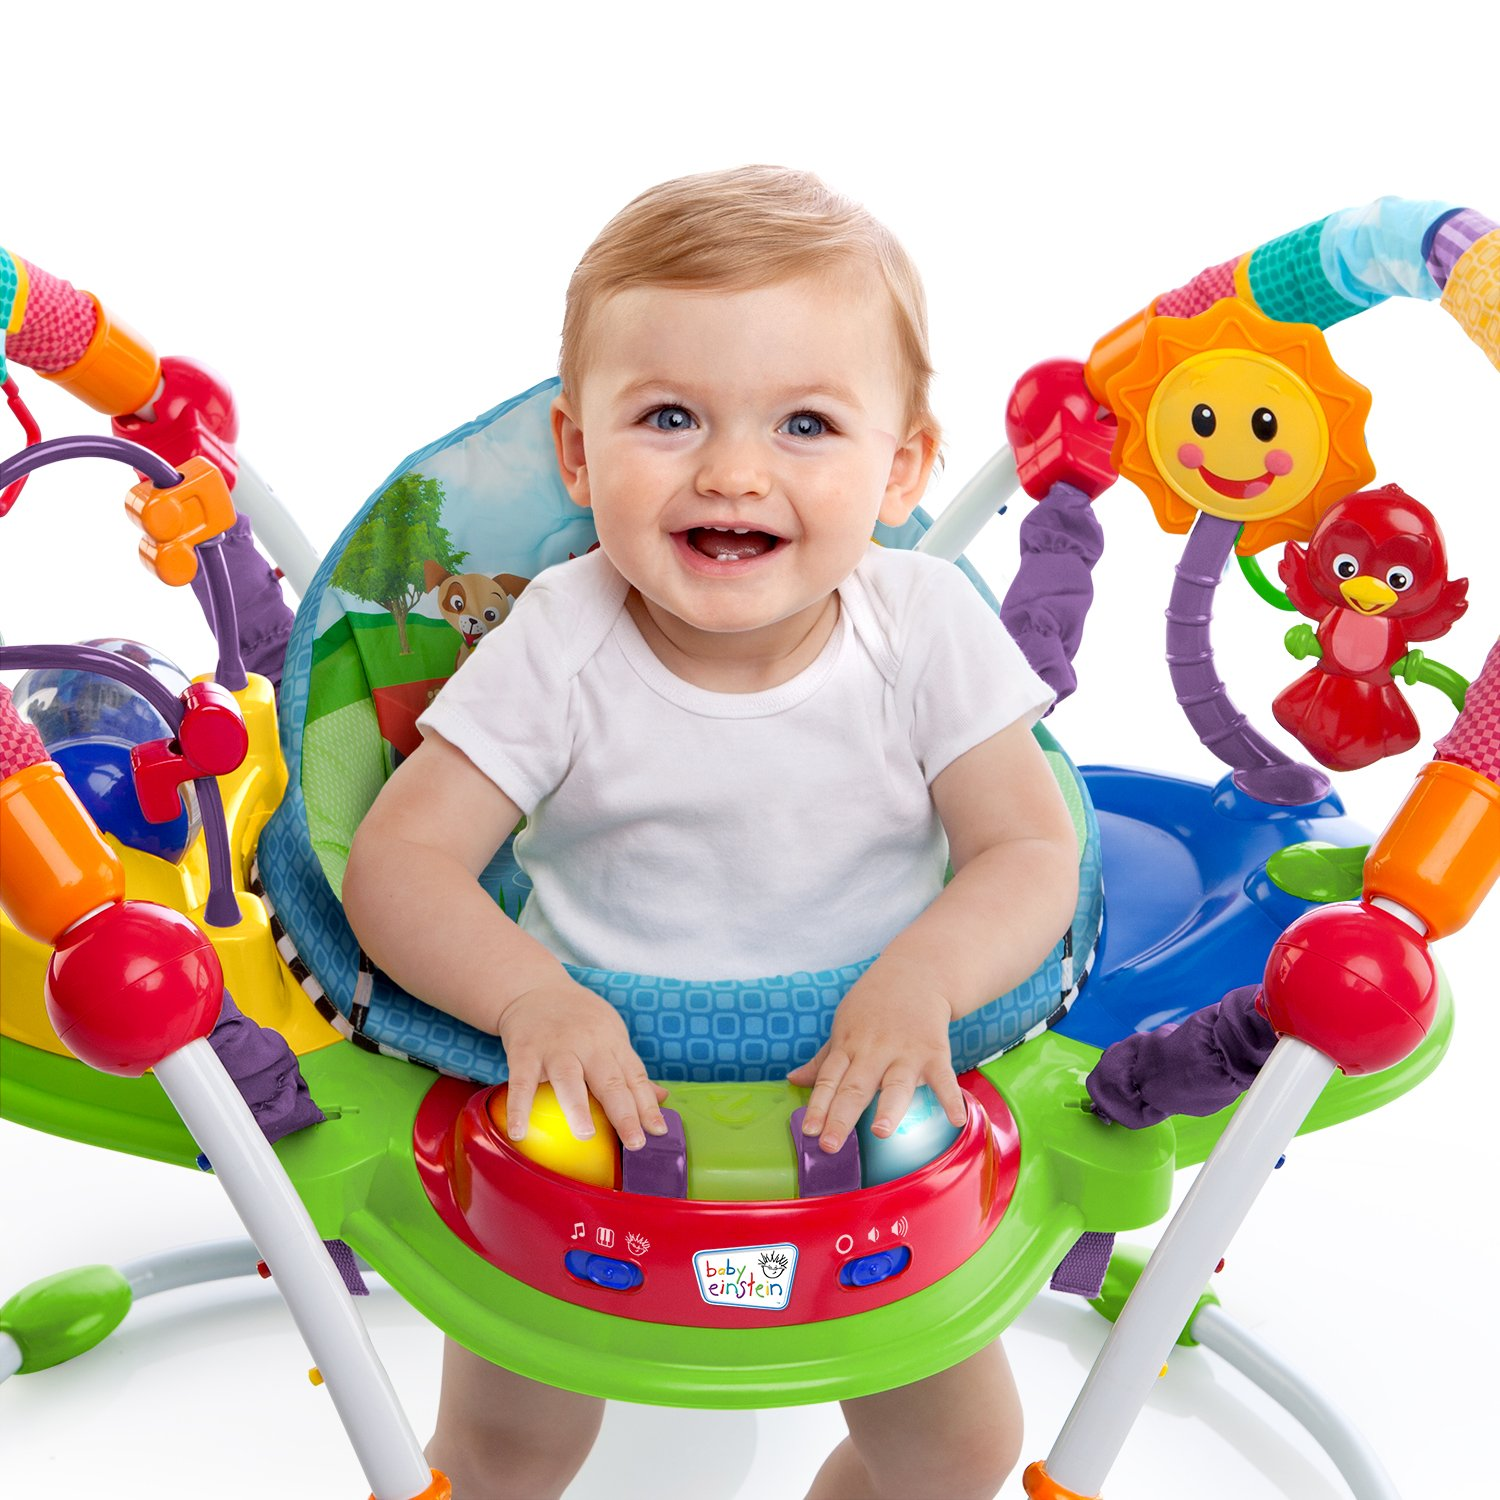 Baby Einstein Activity Jumper Special Edition